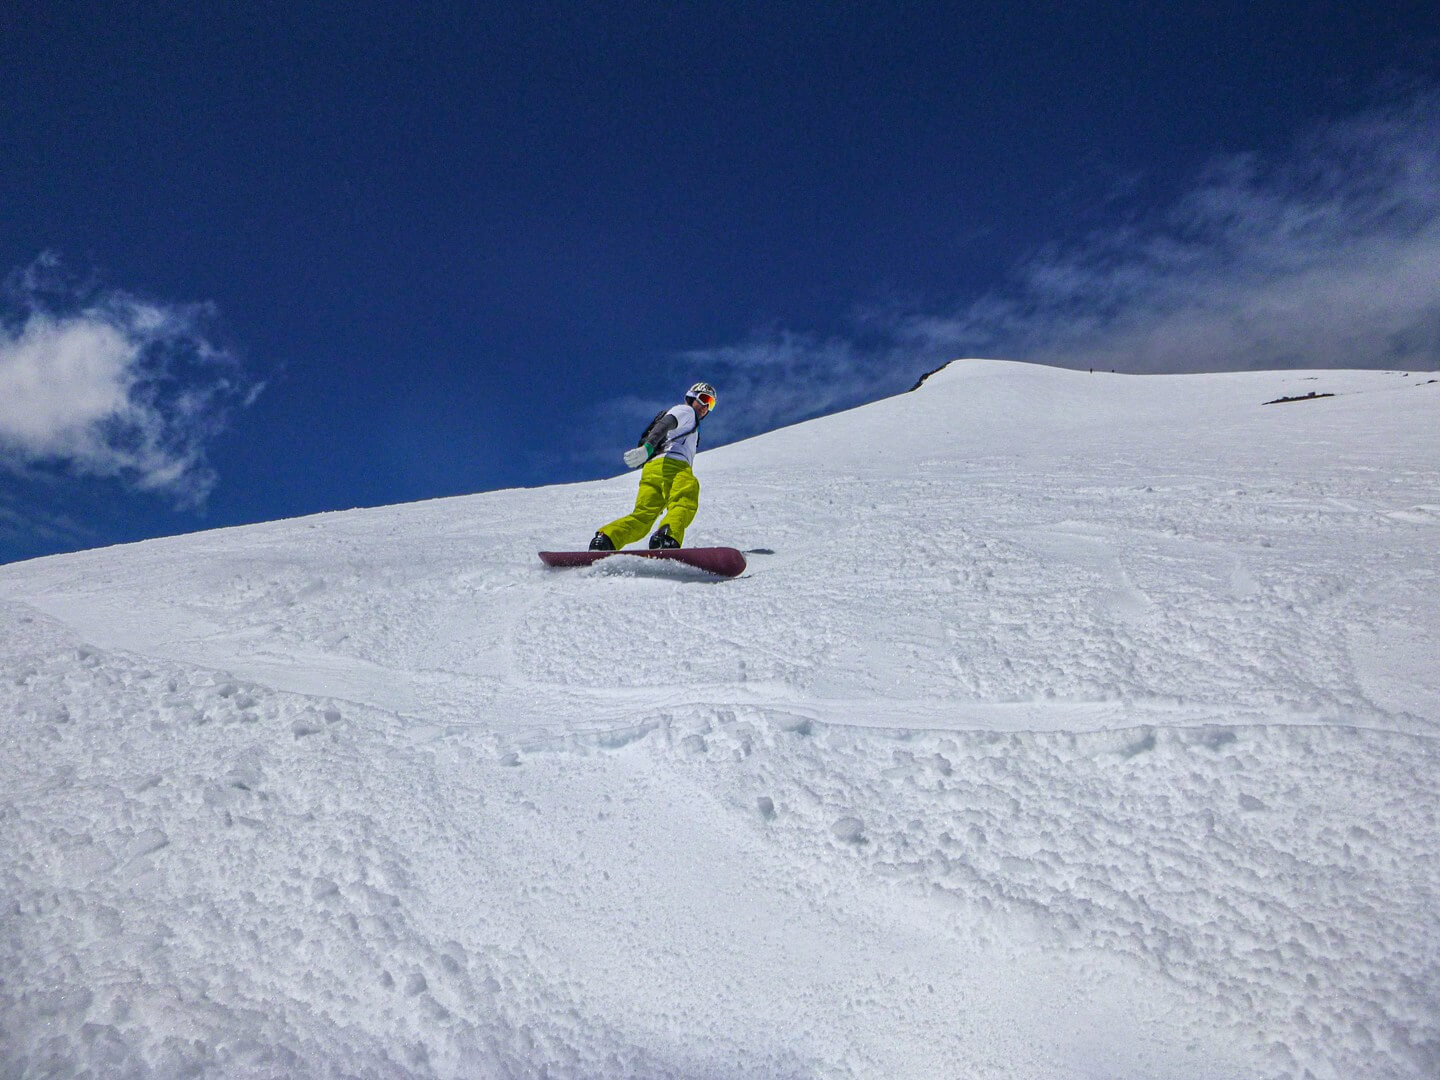 snowboarder enjoying the sunshine and spring conditions